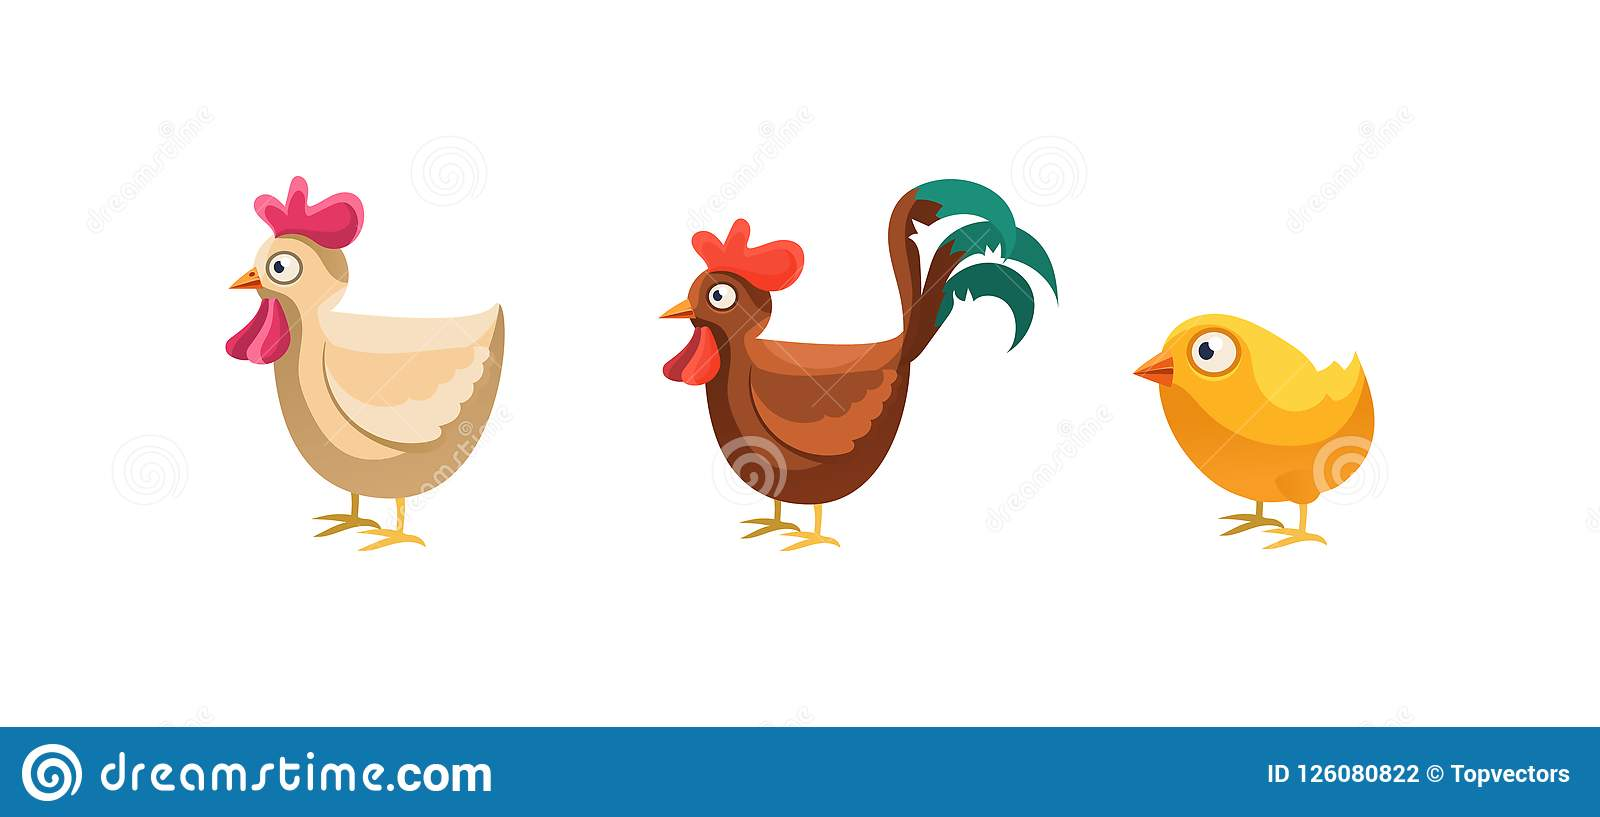 Image of: Animal Crossing Rooster Hen And Chicken Funny Cartoon Farm Animals Game User Interface Element For Mobile Or Computer Games Vector Illustration Web Design Fishing Games Rooster Hen And Chicken Funny Cartoon Farm Animals Game User